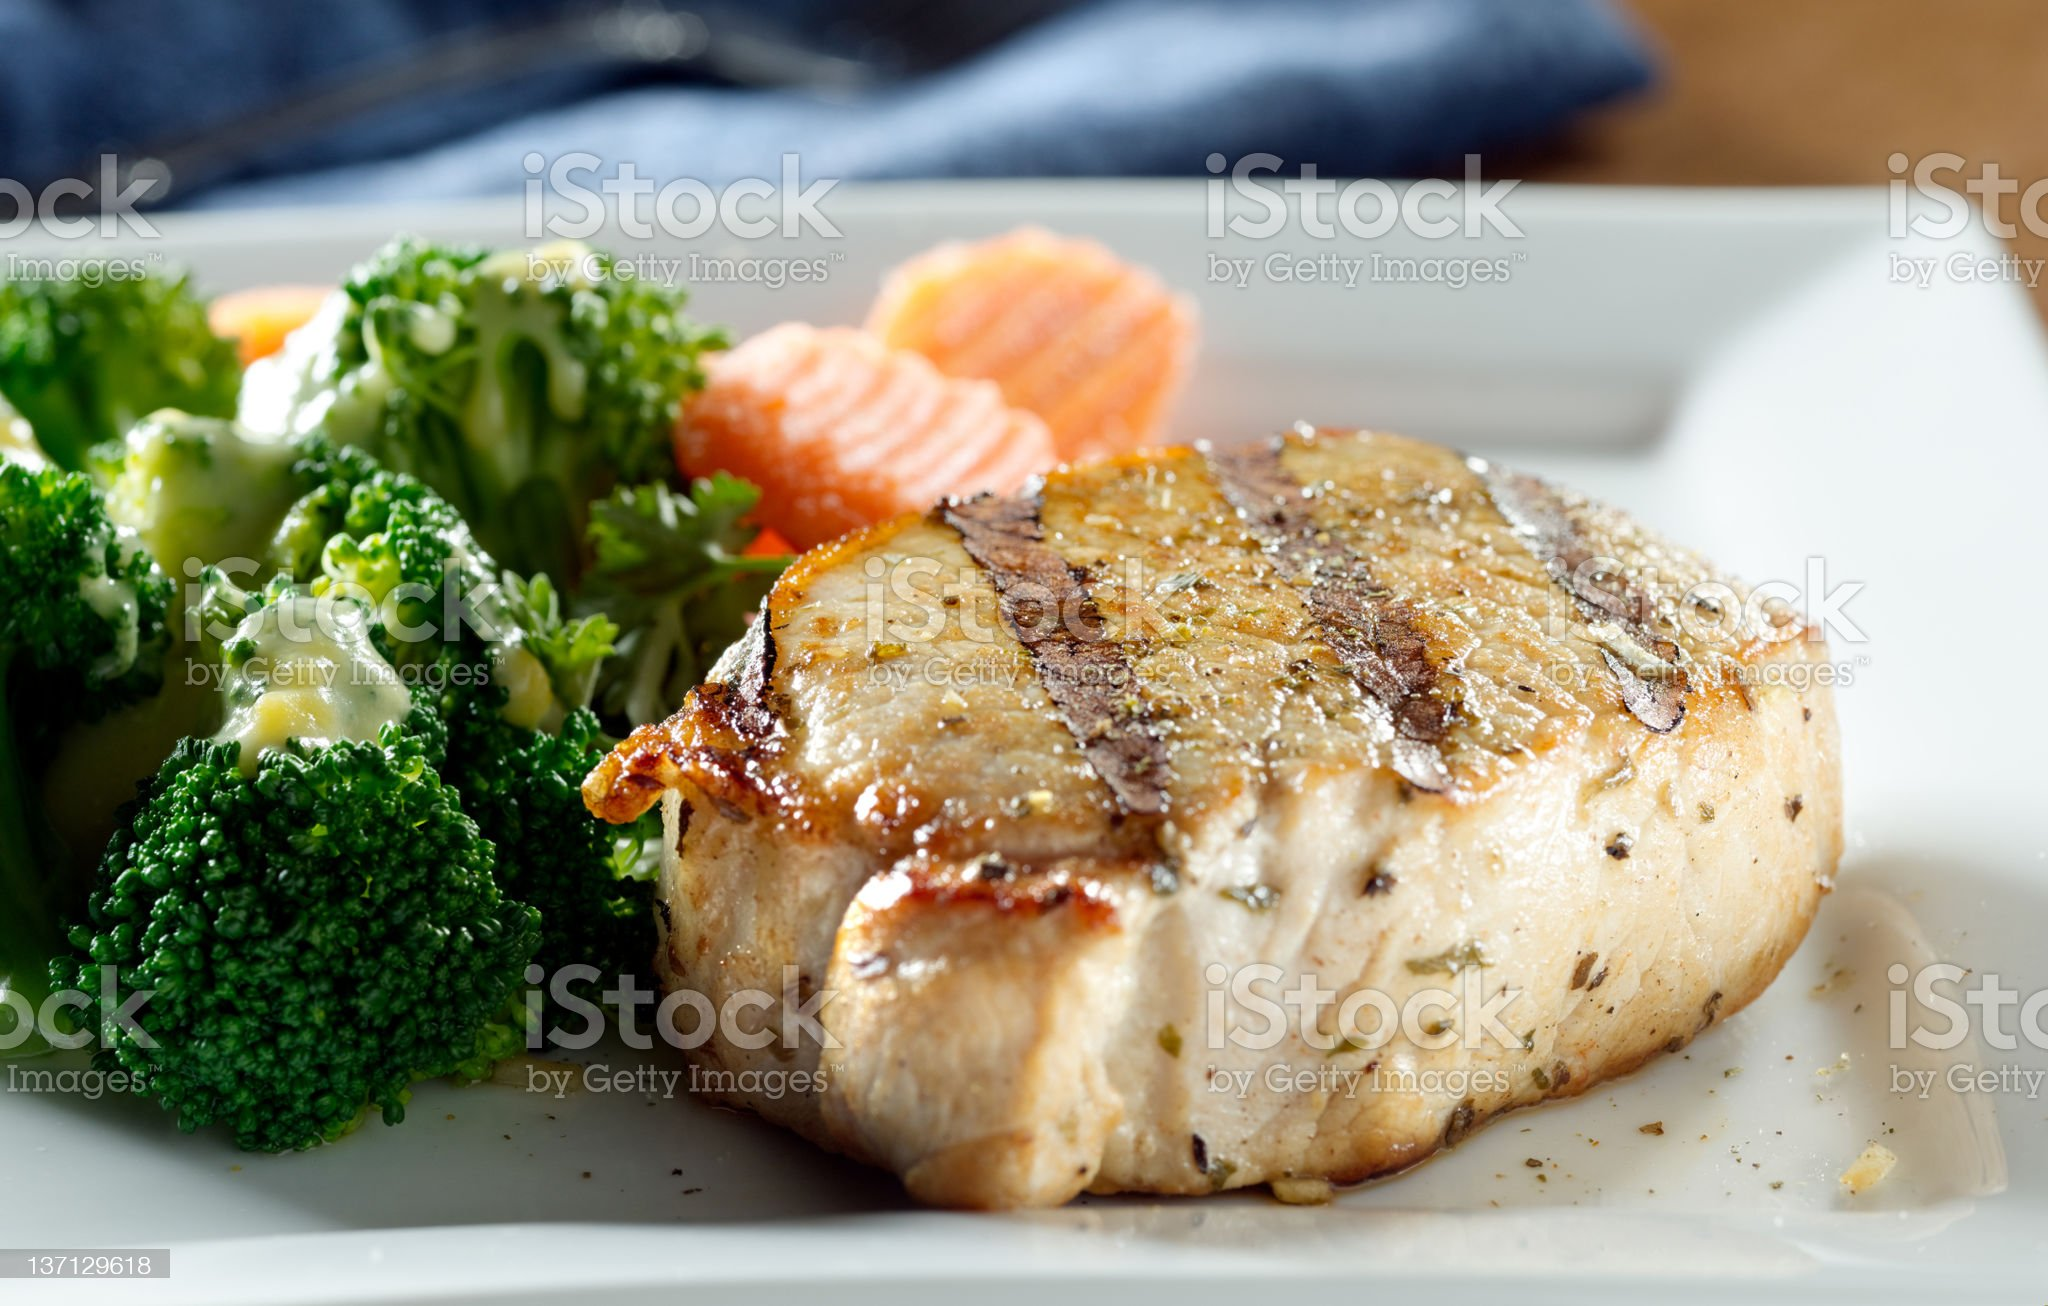 Pork loin filet with carrots, broccoli and hollandaise sauce royalty-free stock photo